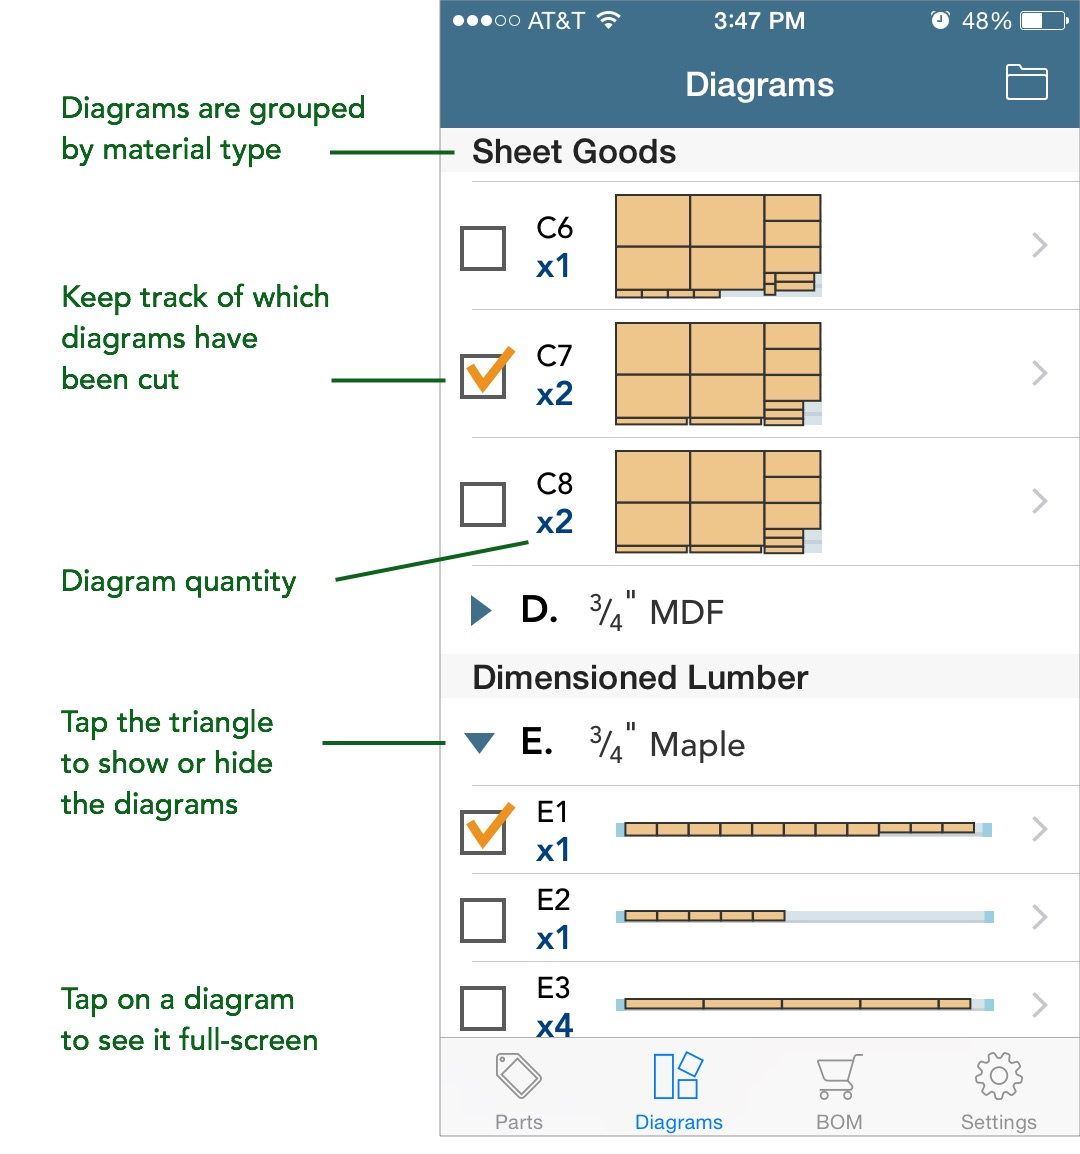 diagrams list screen (iOS)